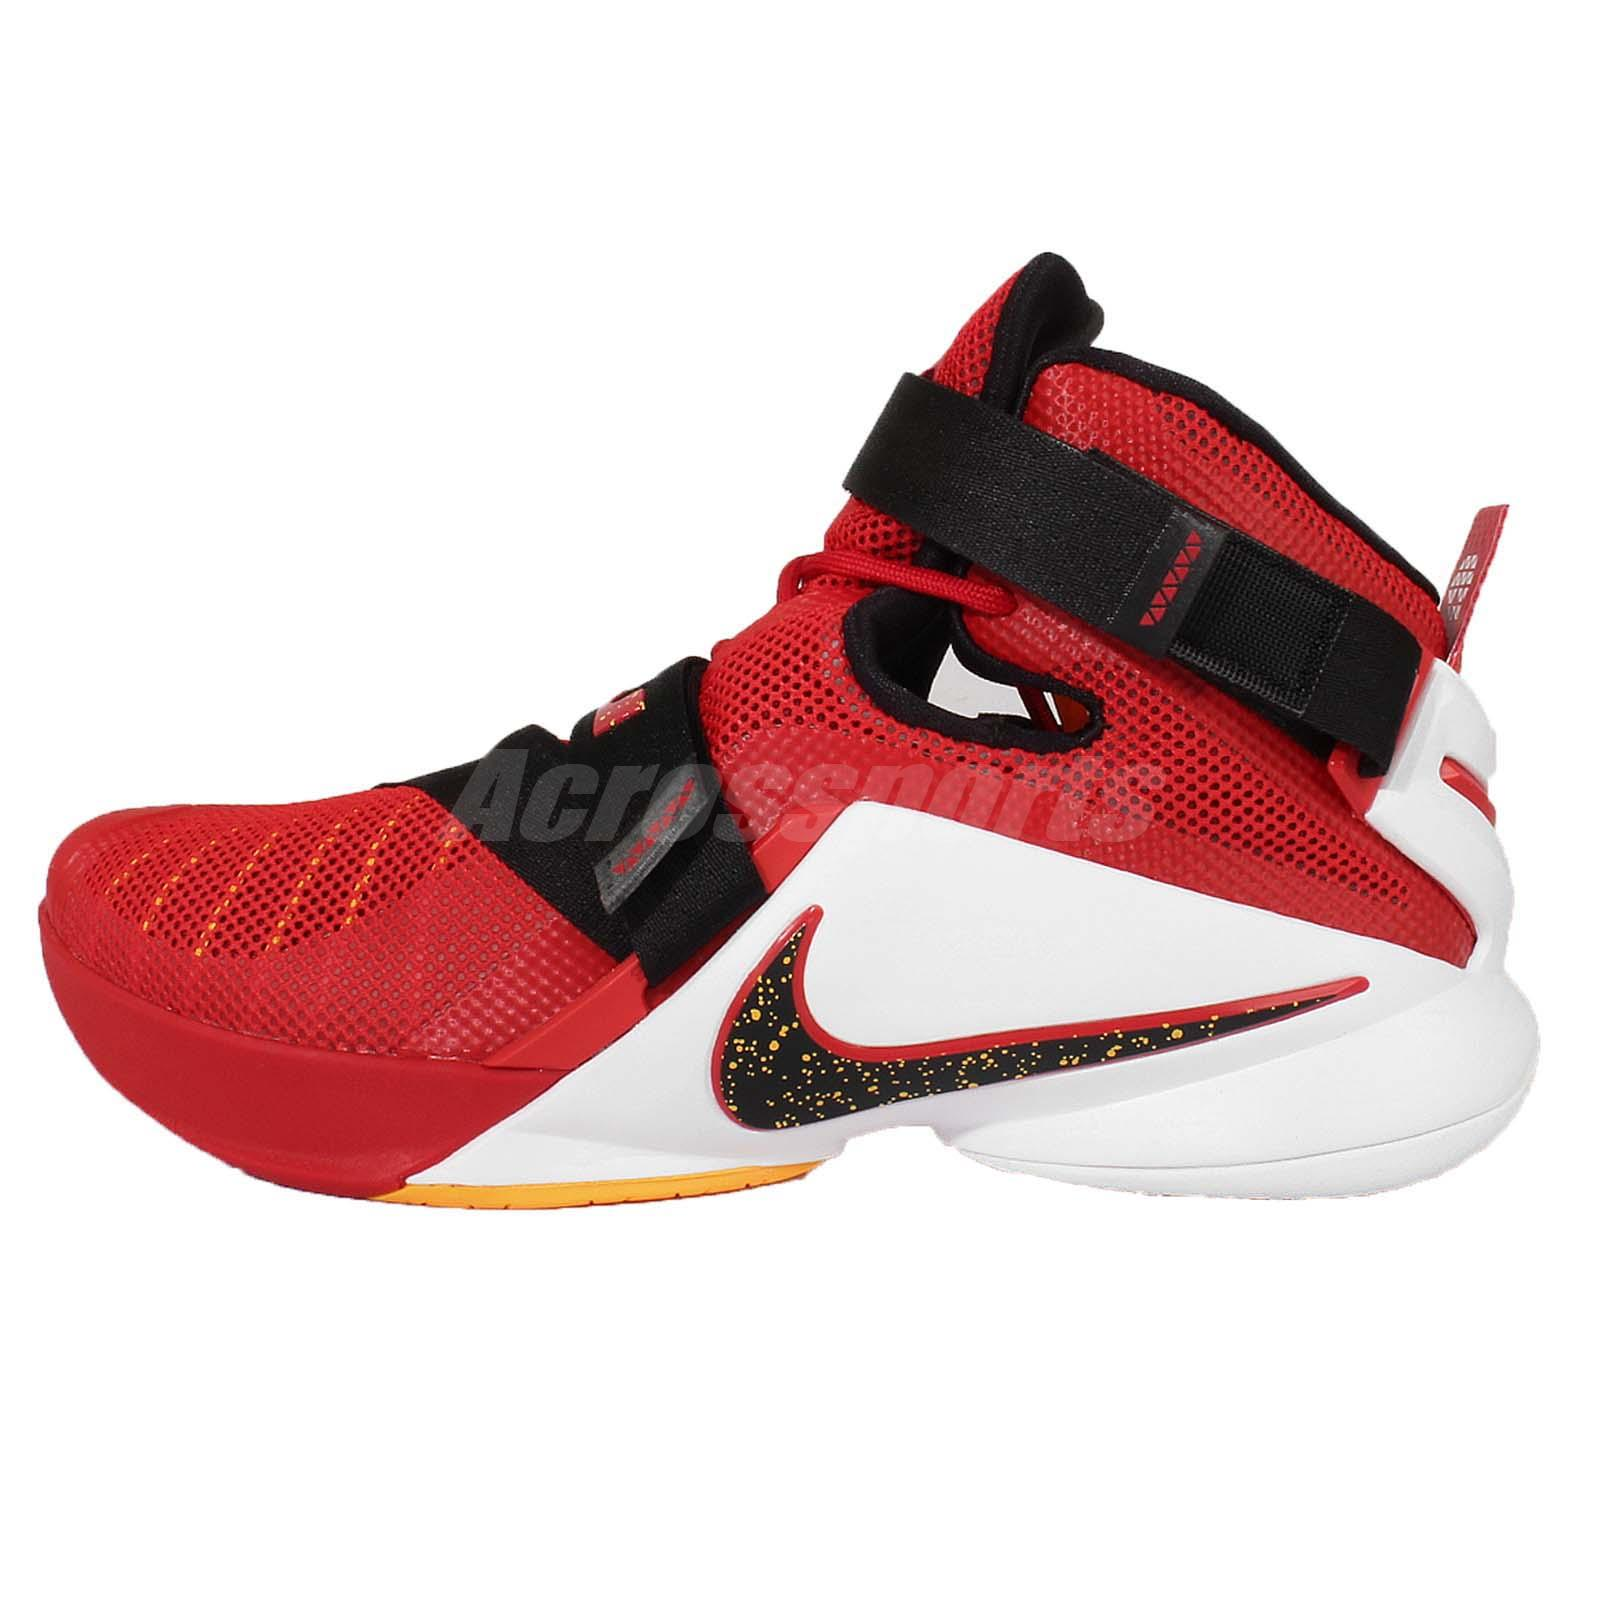 d424270c5110 ... Nike Lebron Soldier IX EP 9 Lebron James Red Mens Basketball Shoes  749420-606 ...